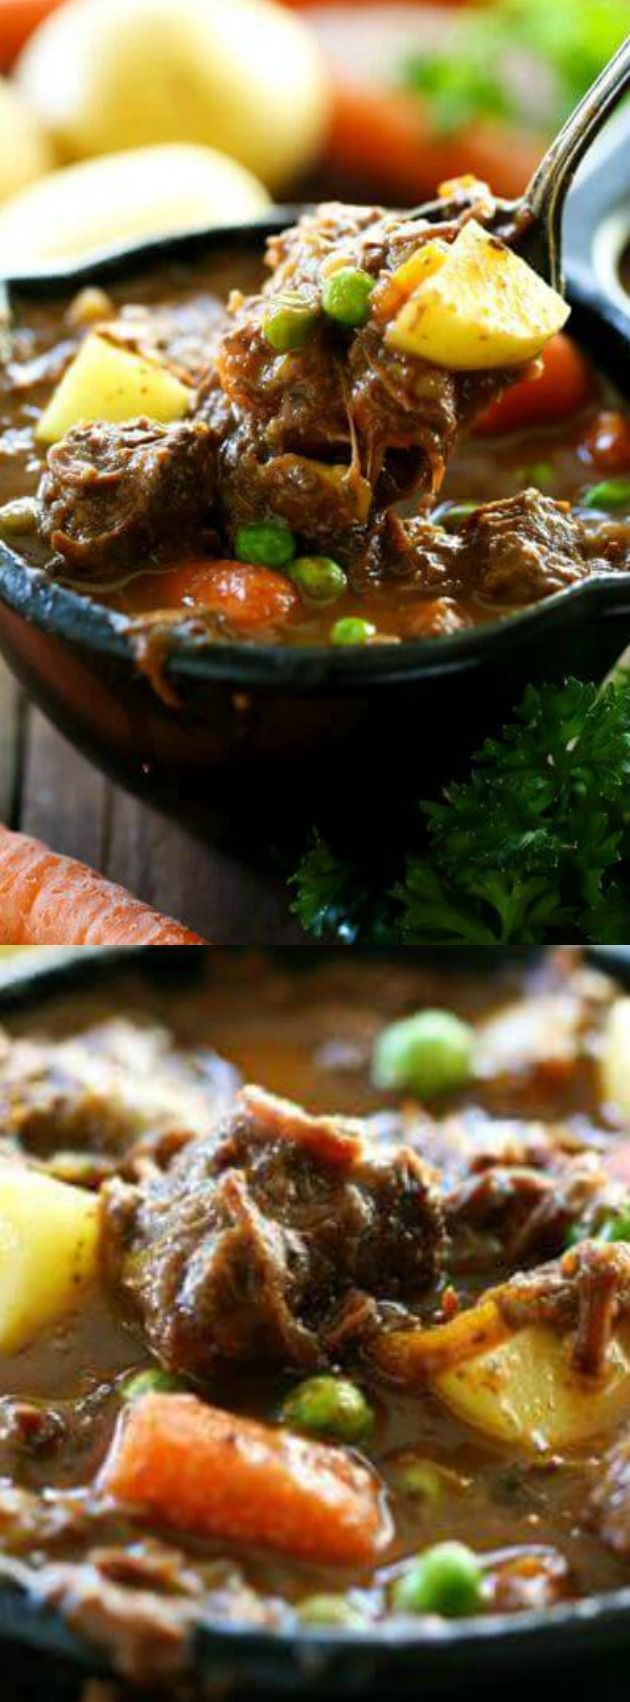 This Slow Cooker Beef Stew from Chef in Training is a hearty and delicious beef stew that is loaded with yummy vegetables and incredible flavor! It makes the perfect meal for busy days that will fill everyone up!